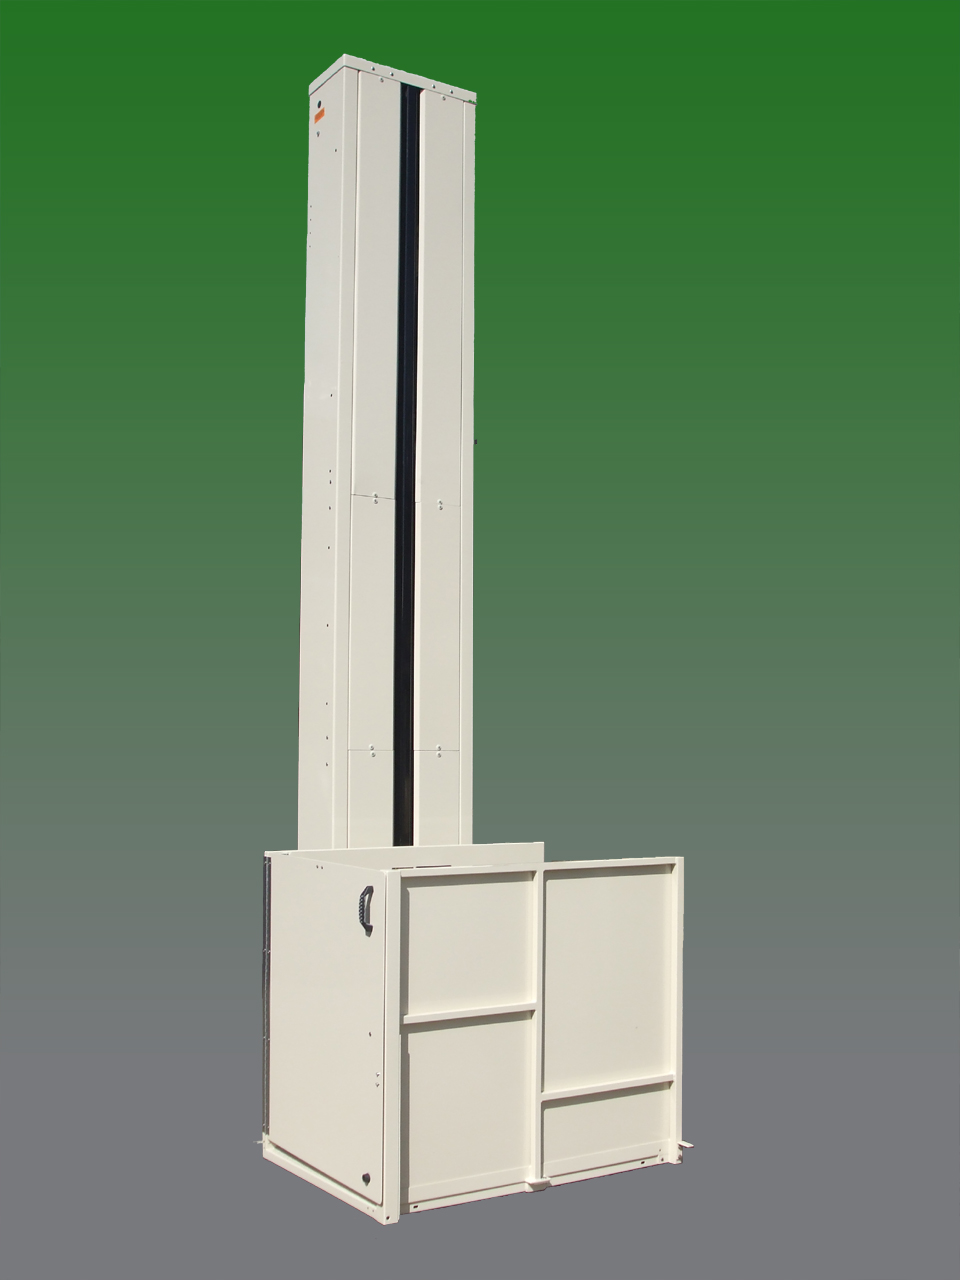 mobile home Customer Reviews Ratings Consumer Reports wheelchair elevator vpl vertical platform pl macs porchlift are harmar bruno macsliftgate ezaccess